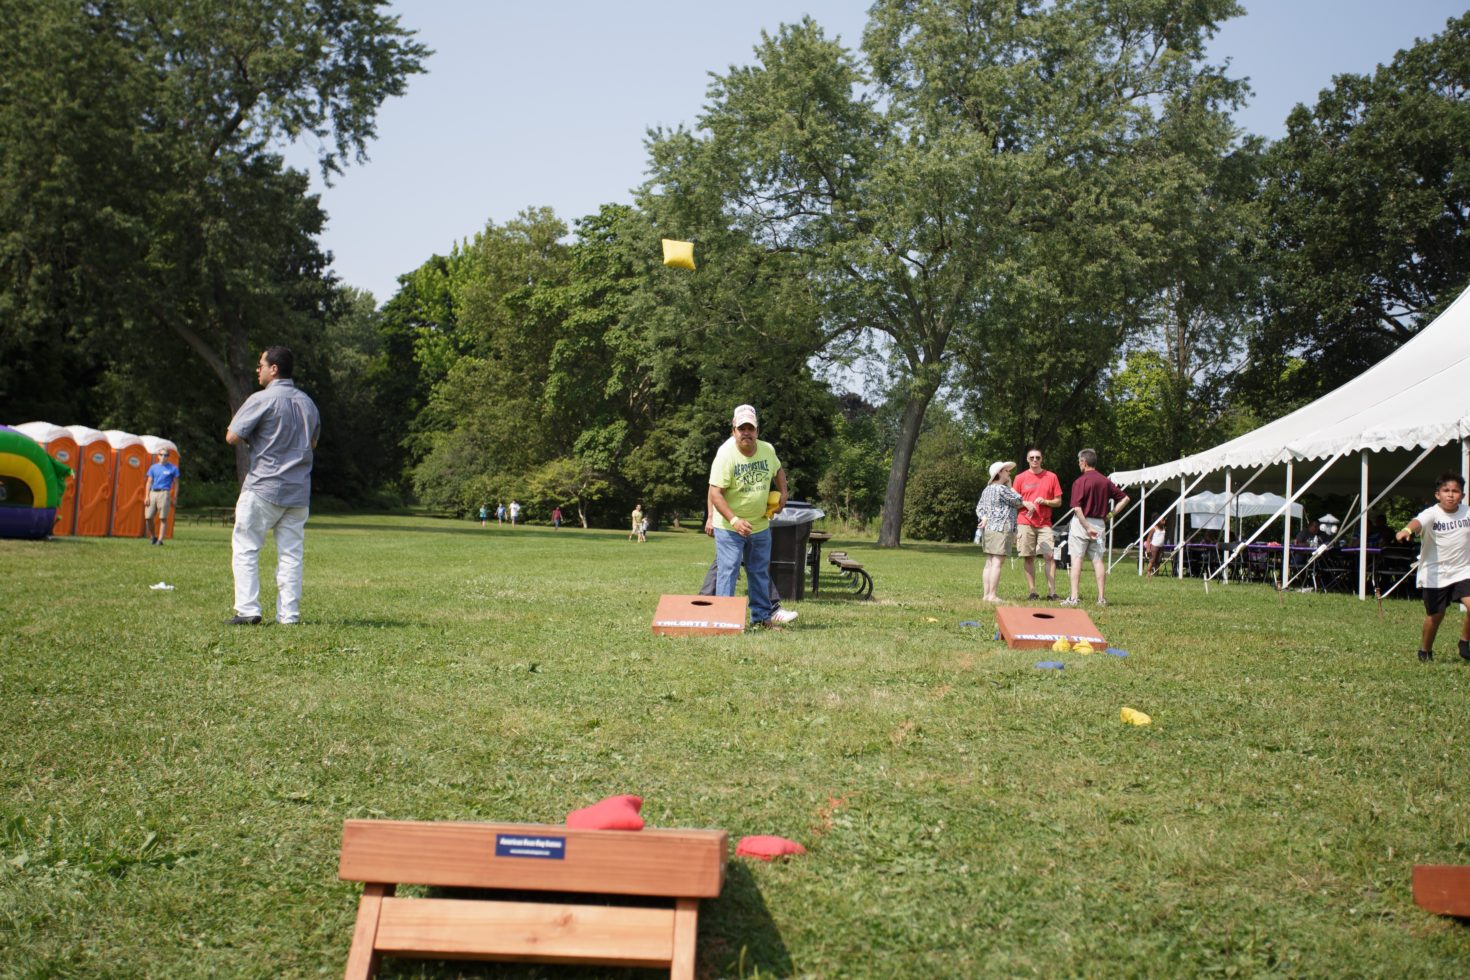 Man playing corn hole game